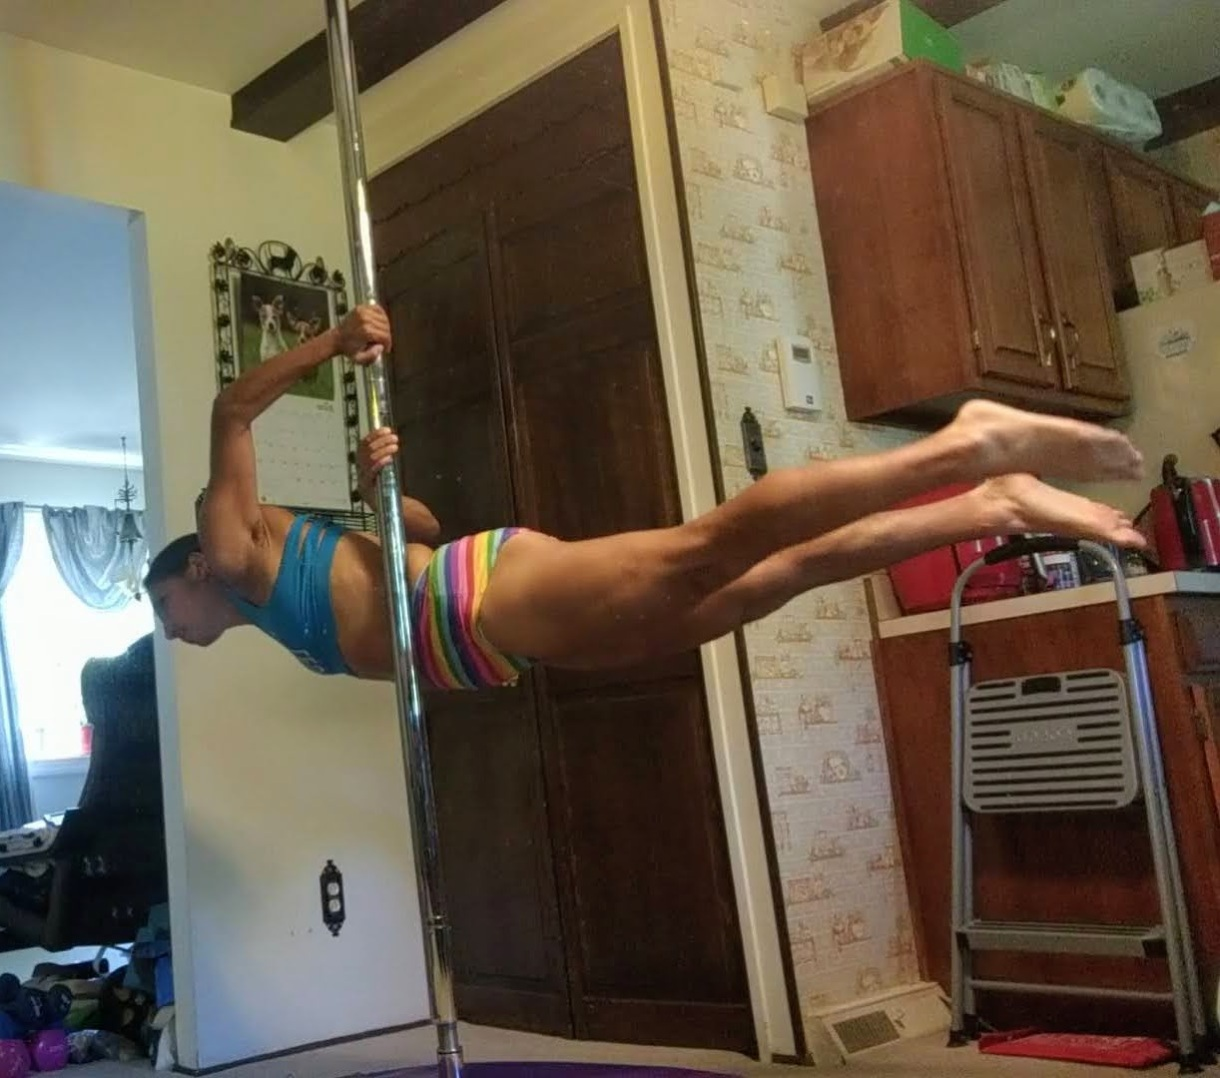 Erin pole dancing at home